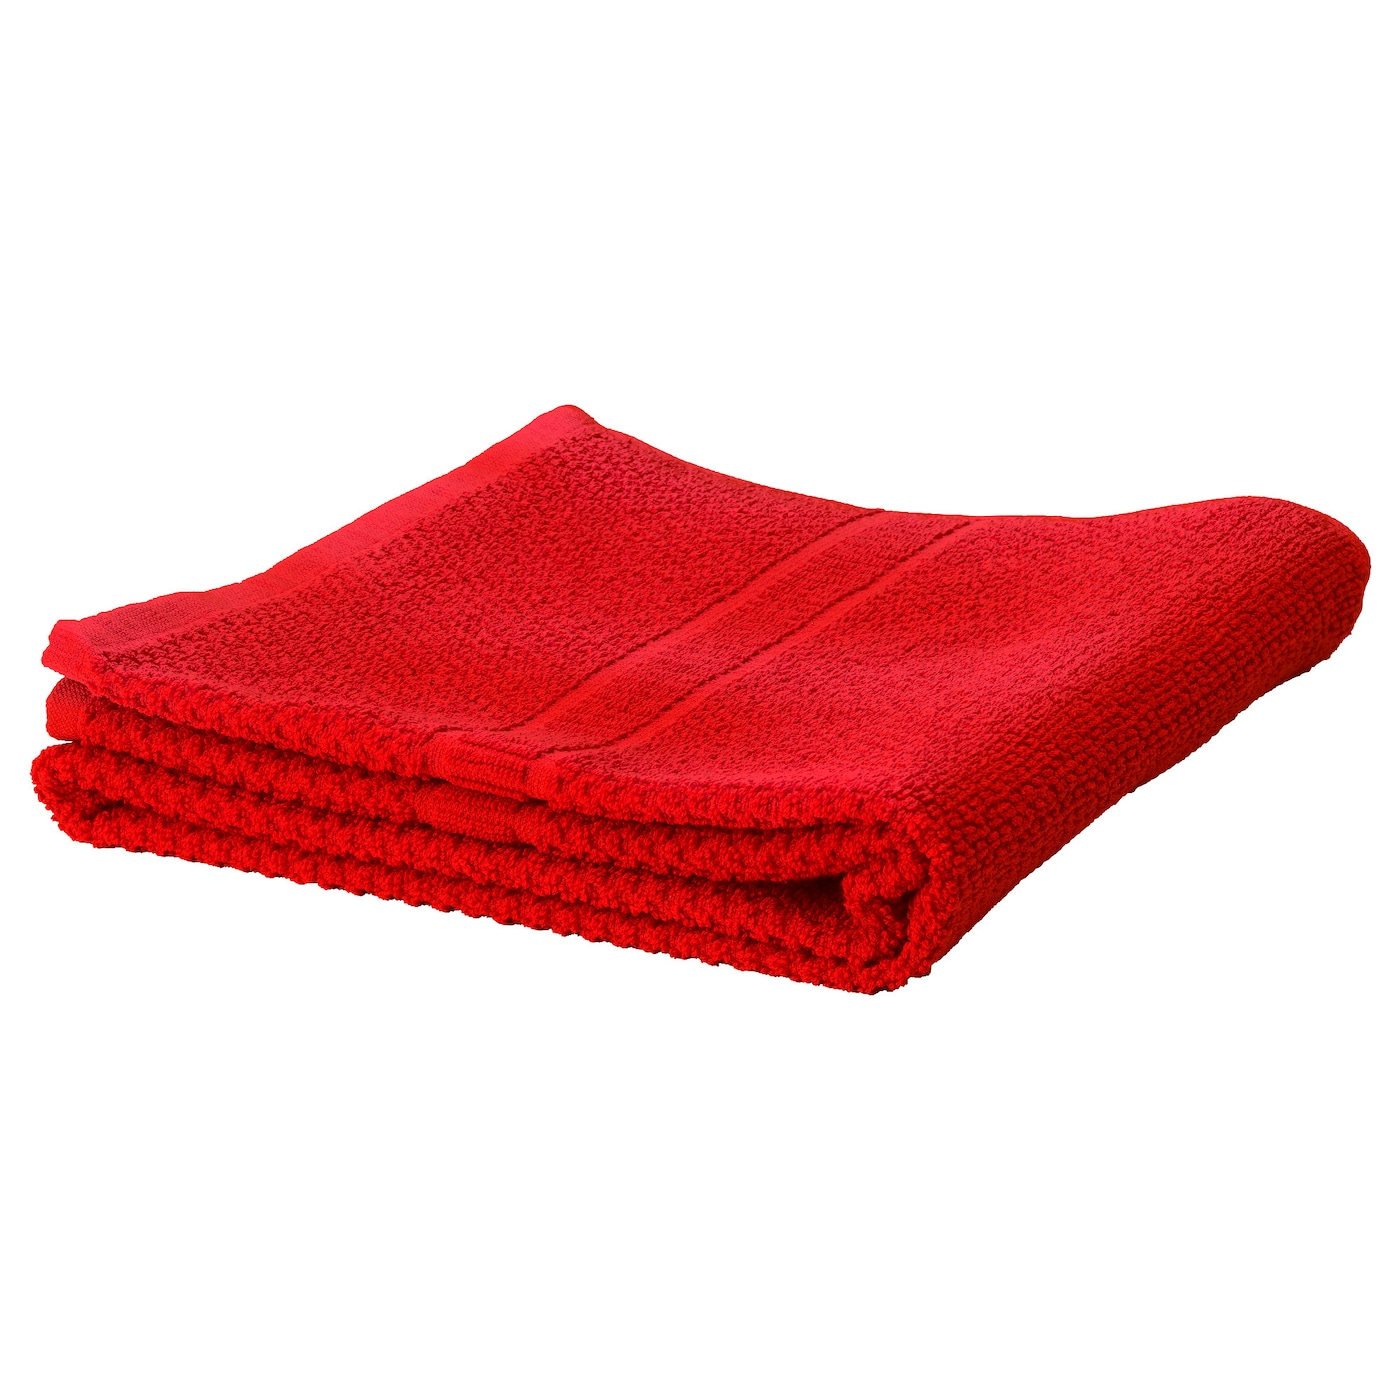 IKEA FRÄJEN hand towel The long, fine fibres of combed cotton create a soft and durable towel.